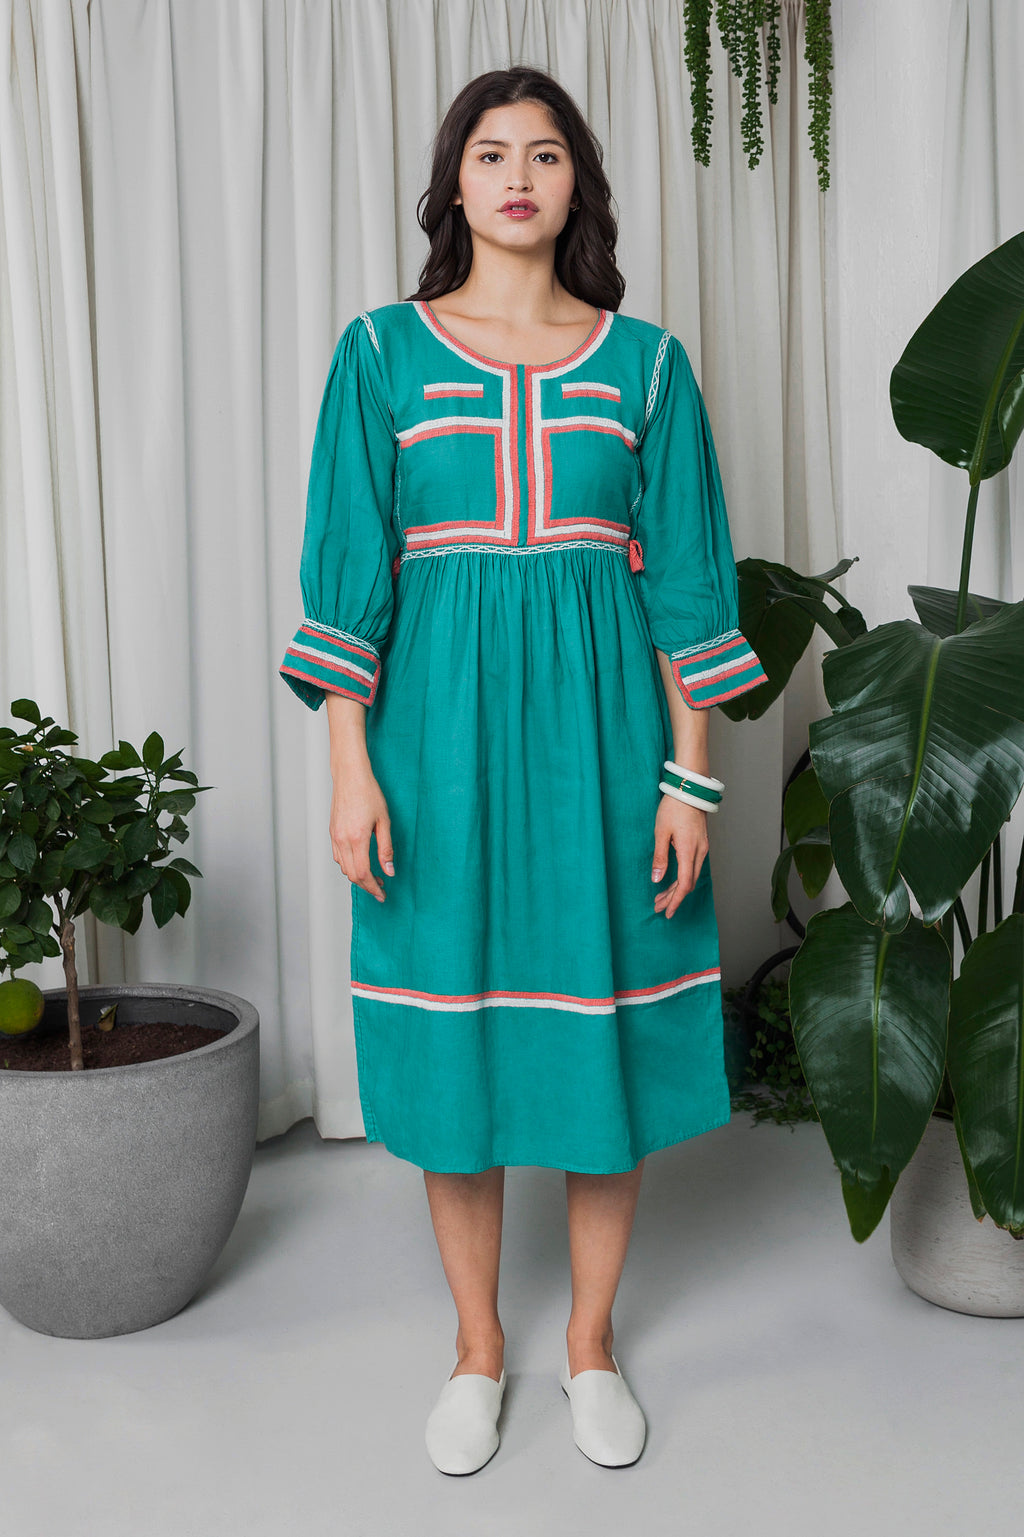 THE SERI DRESS